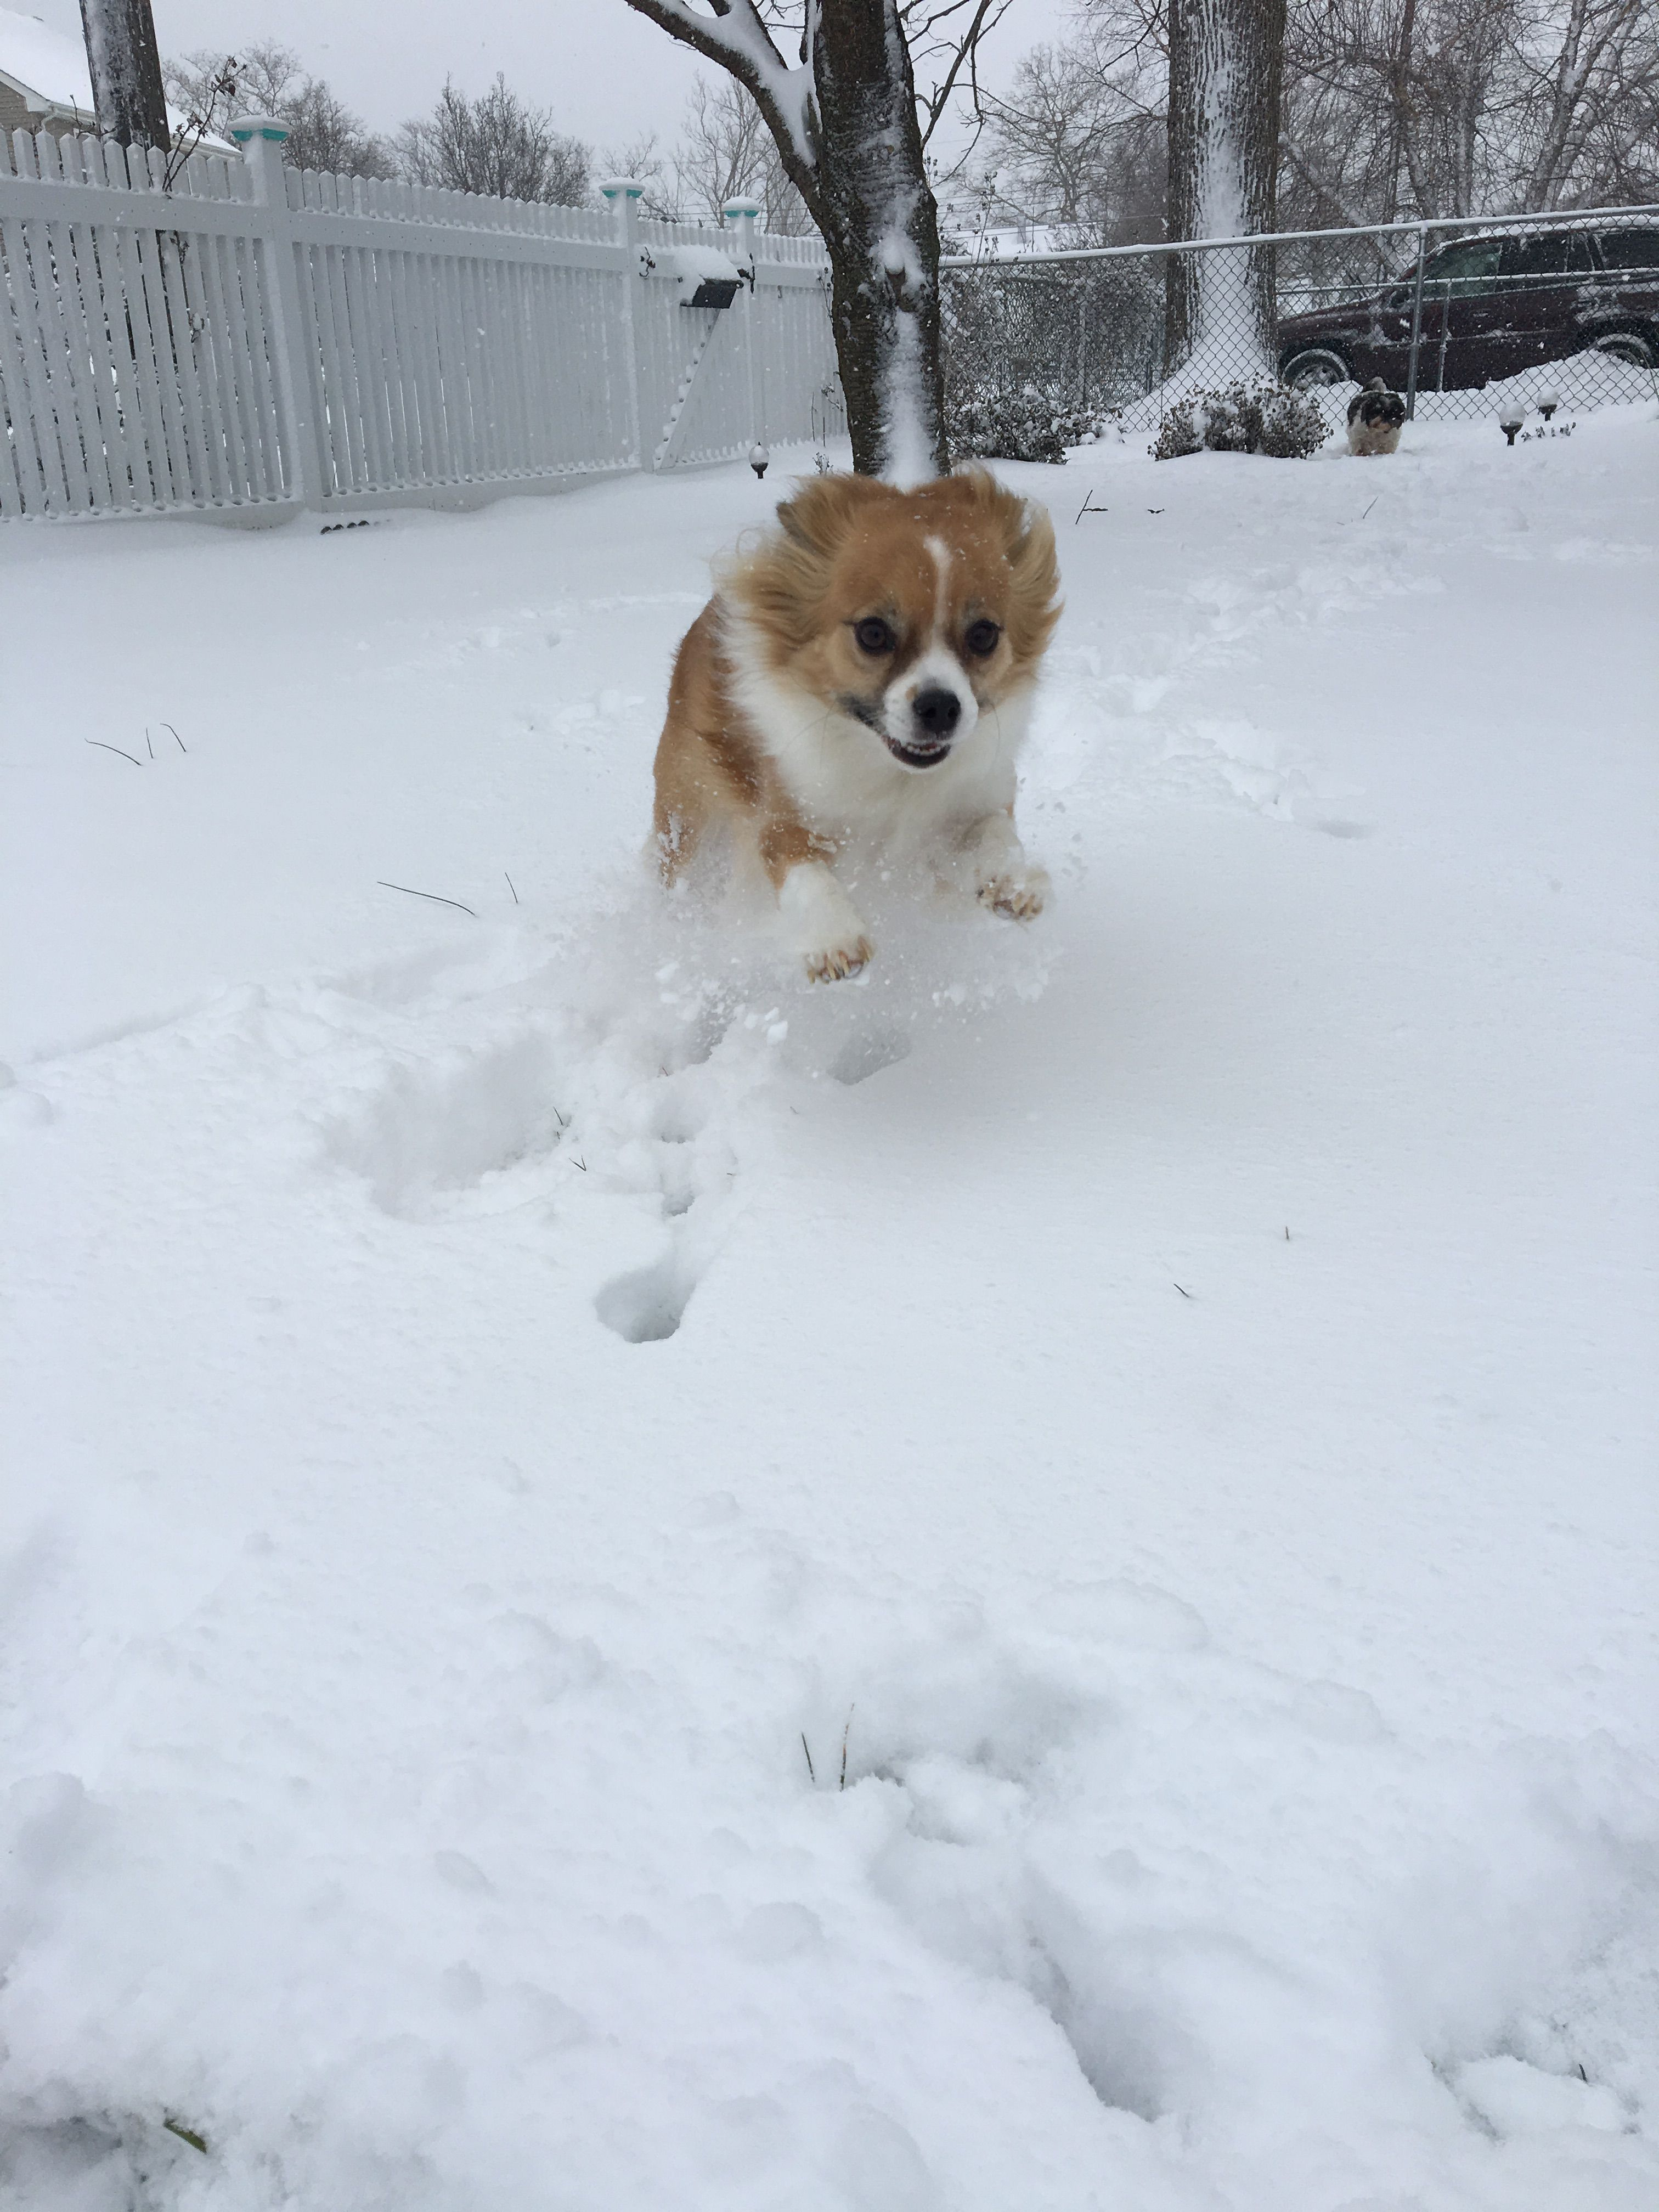 It's FRIDAY and Pepper is ready for the weekend! Snow won